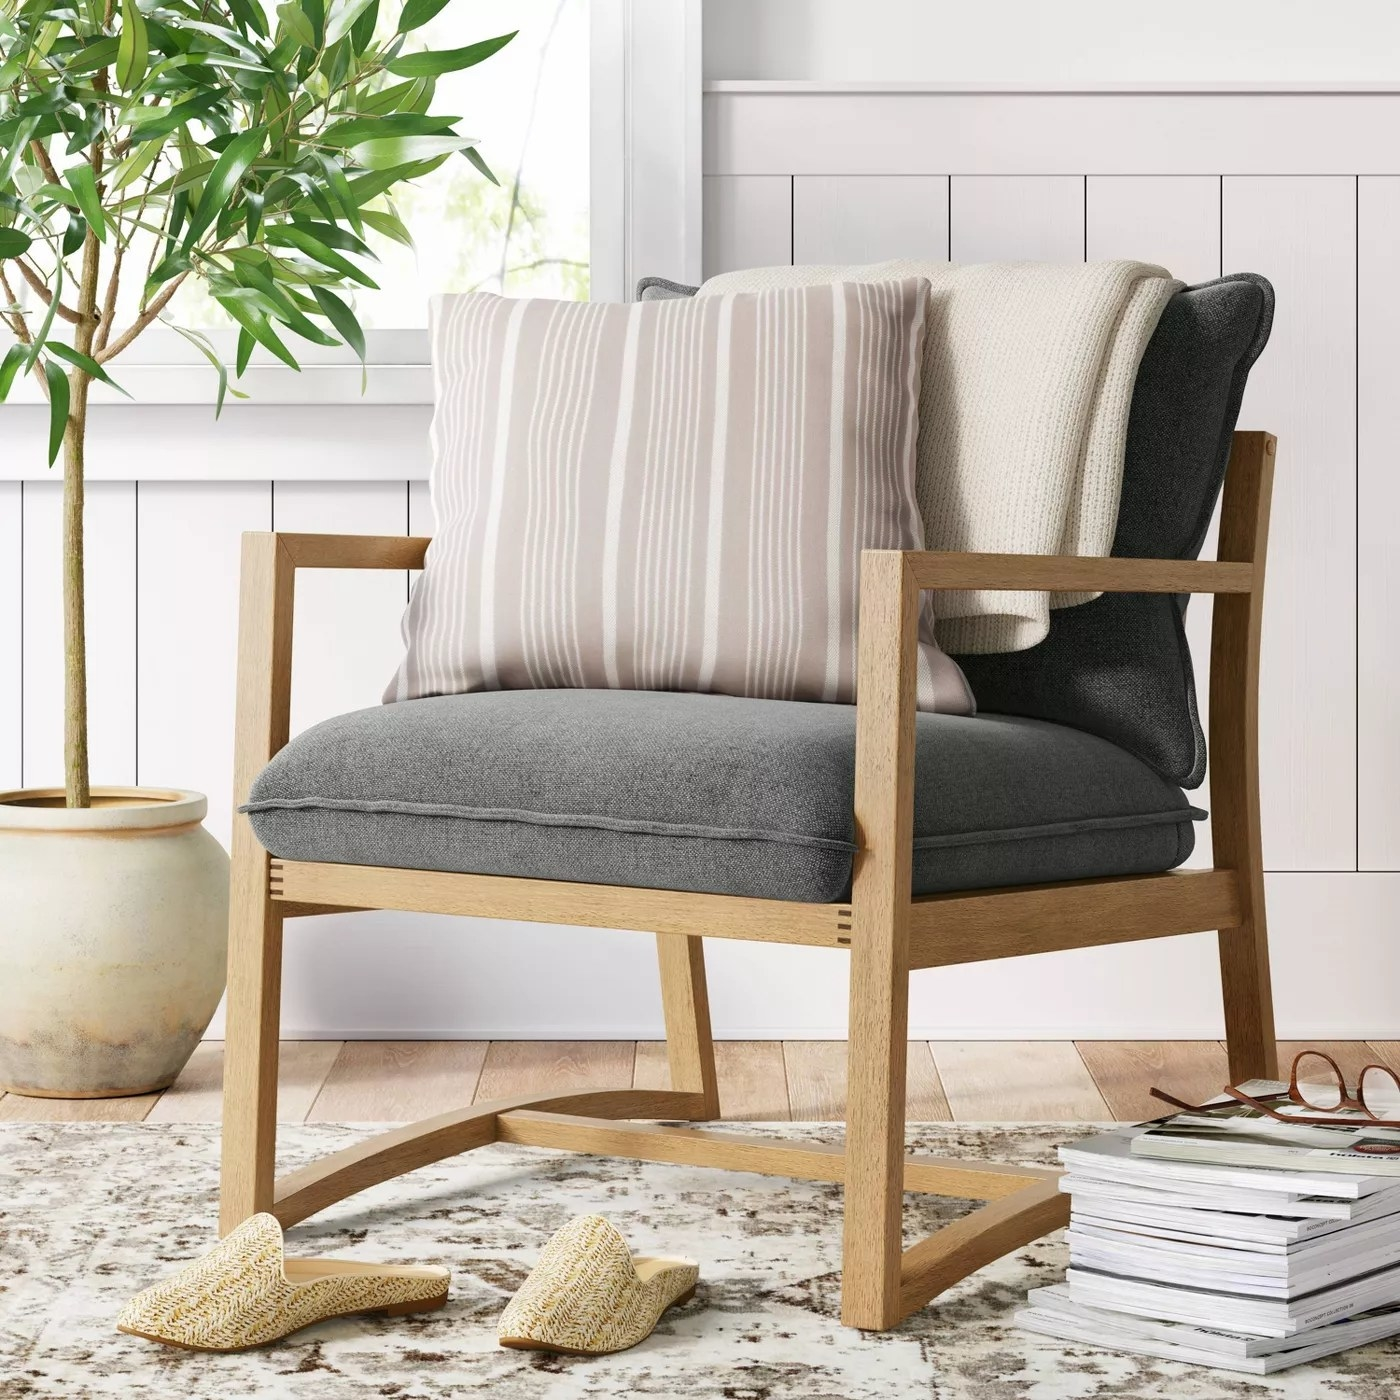 The armchair with an open wooden frame and two seat cushions